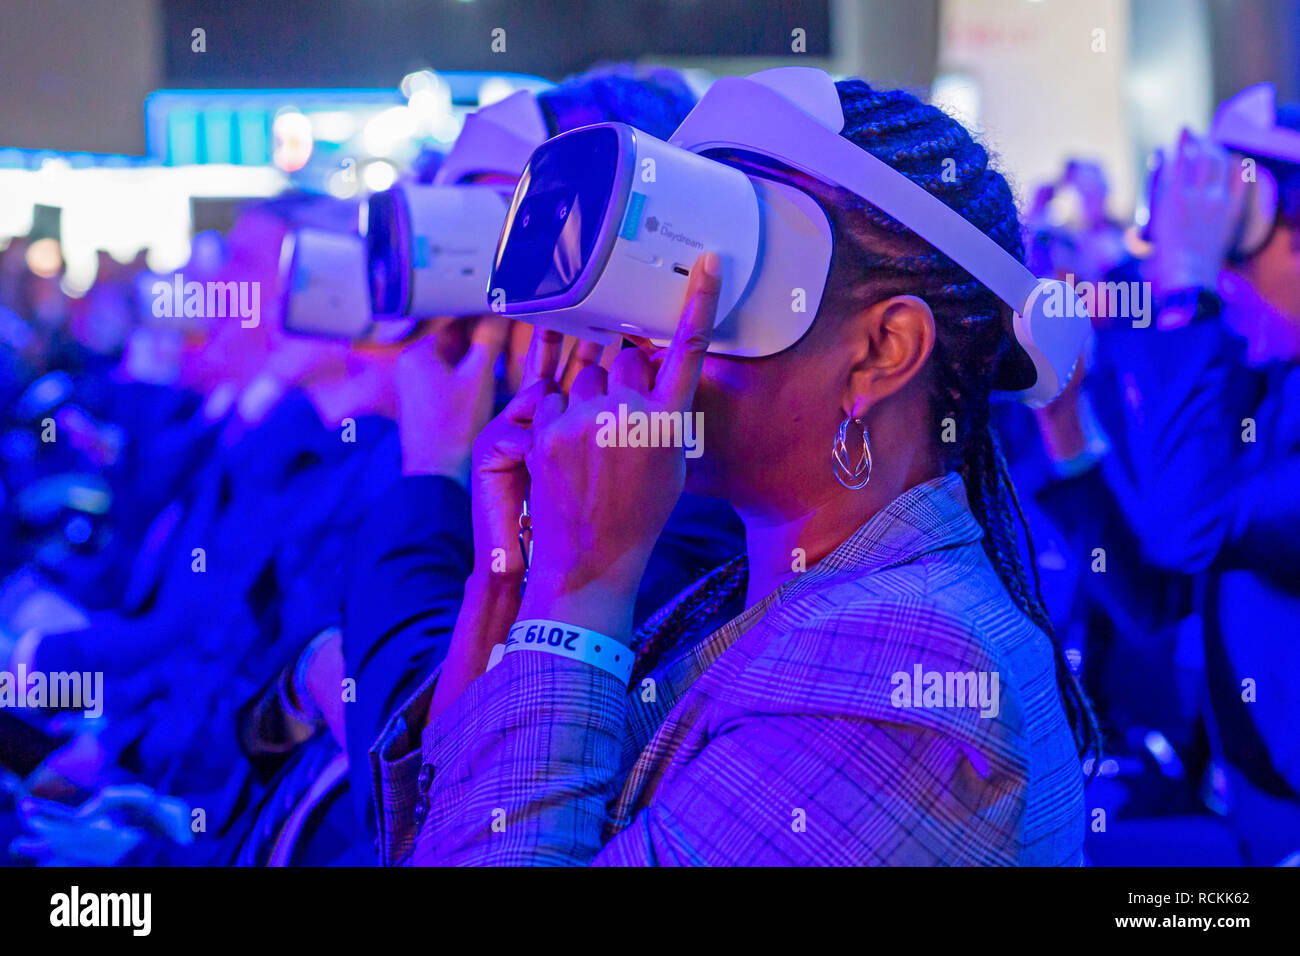 Detroit, Michigan - Journalists use Google Daydream virtual reality headsets as Ford introduces new vehicles at the North American International Auto  - Stock Image